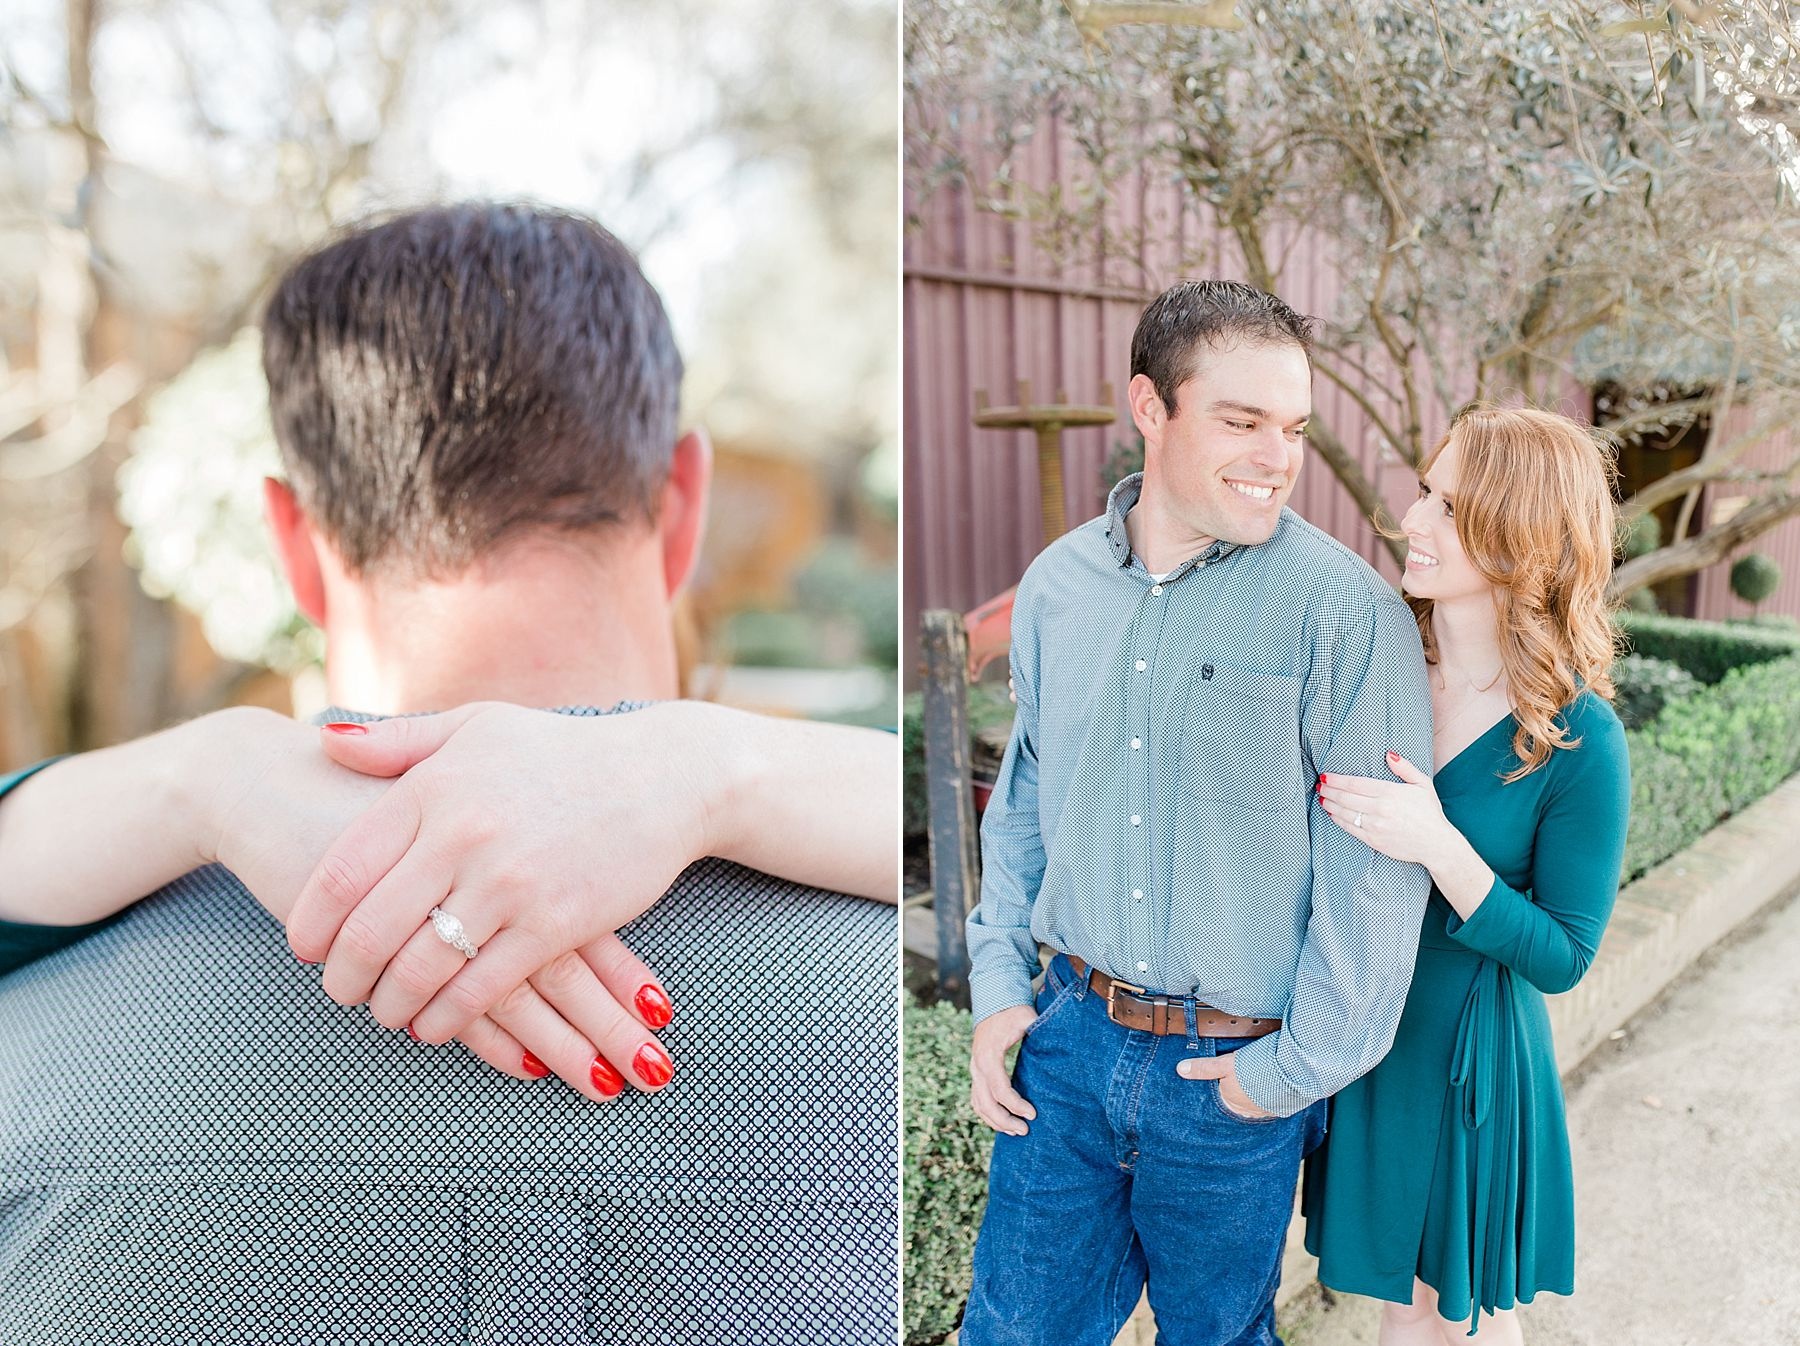 Viaggio Winery Engagement Session - Liz and TJ - Lodi Winery Wedding Photographer_0028.jpg